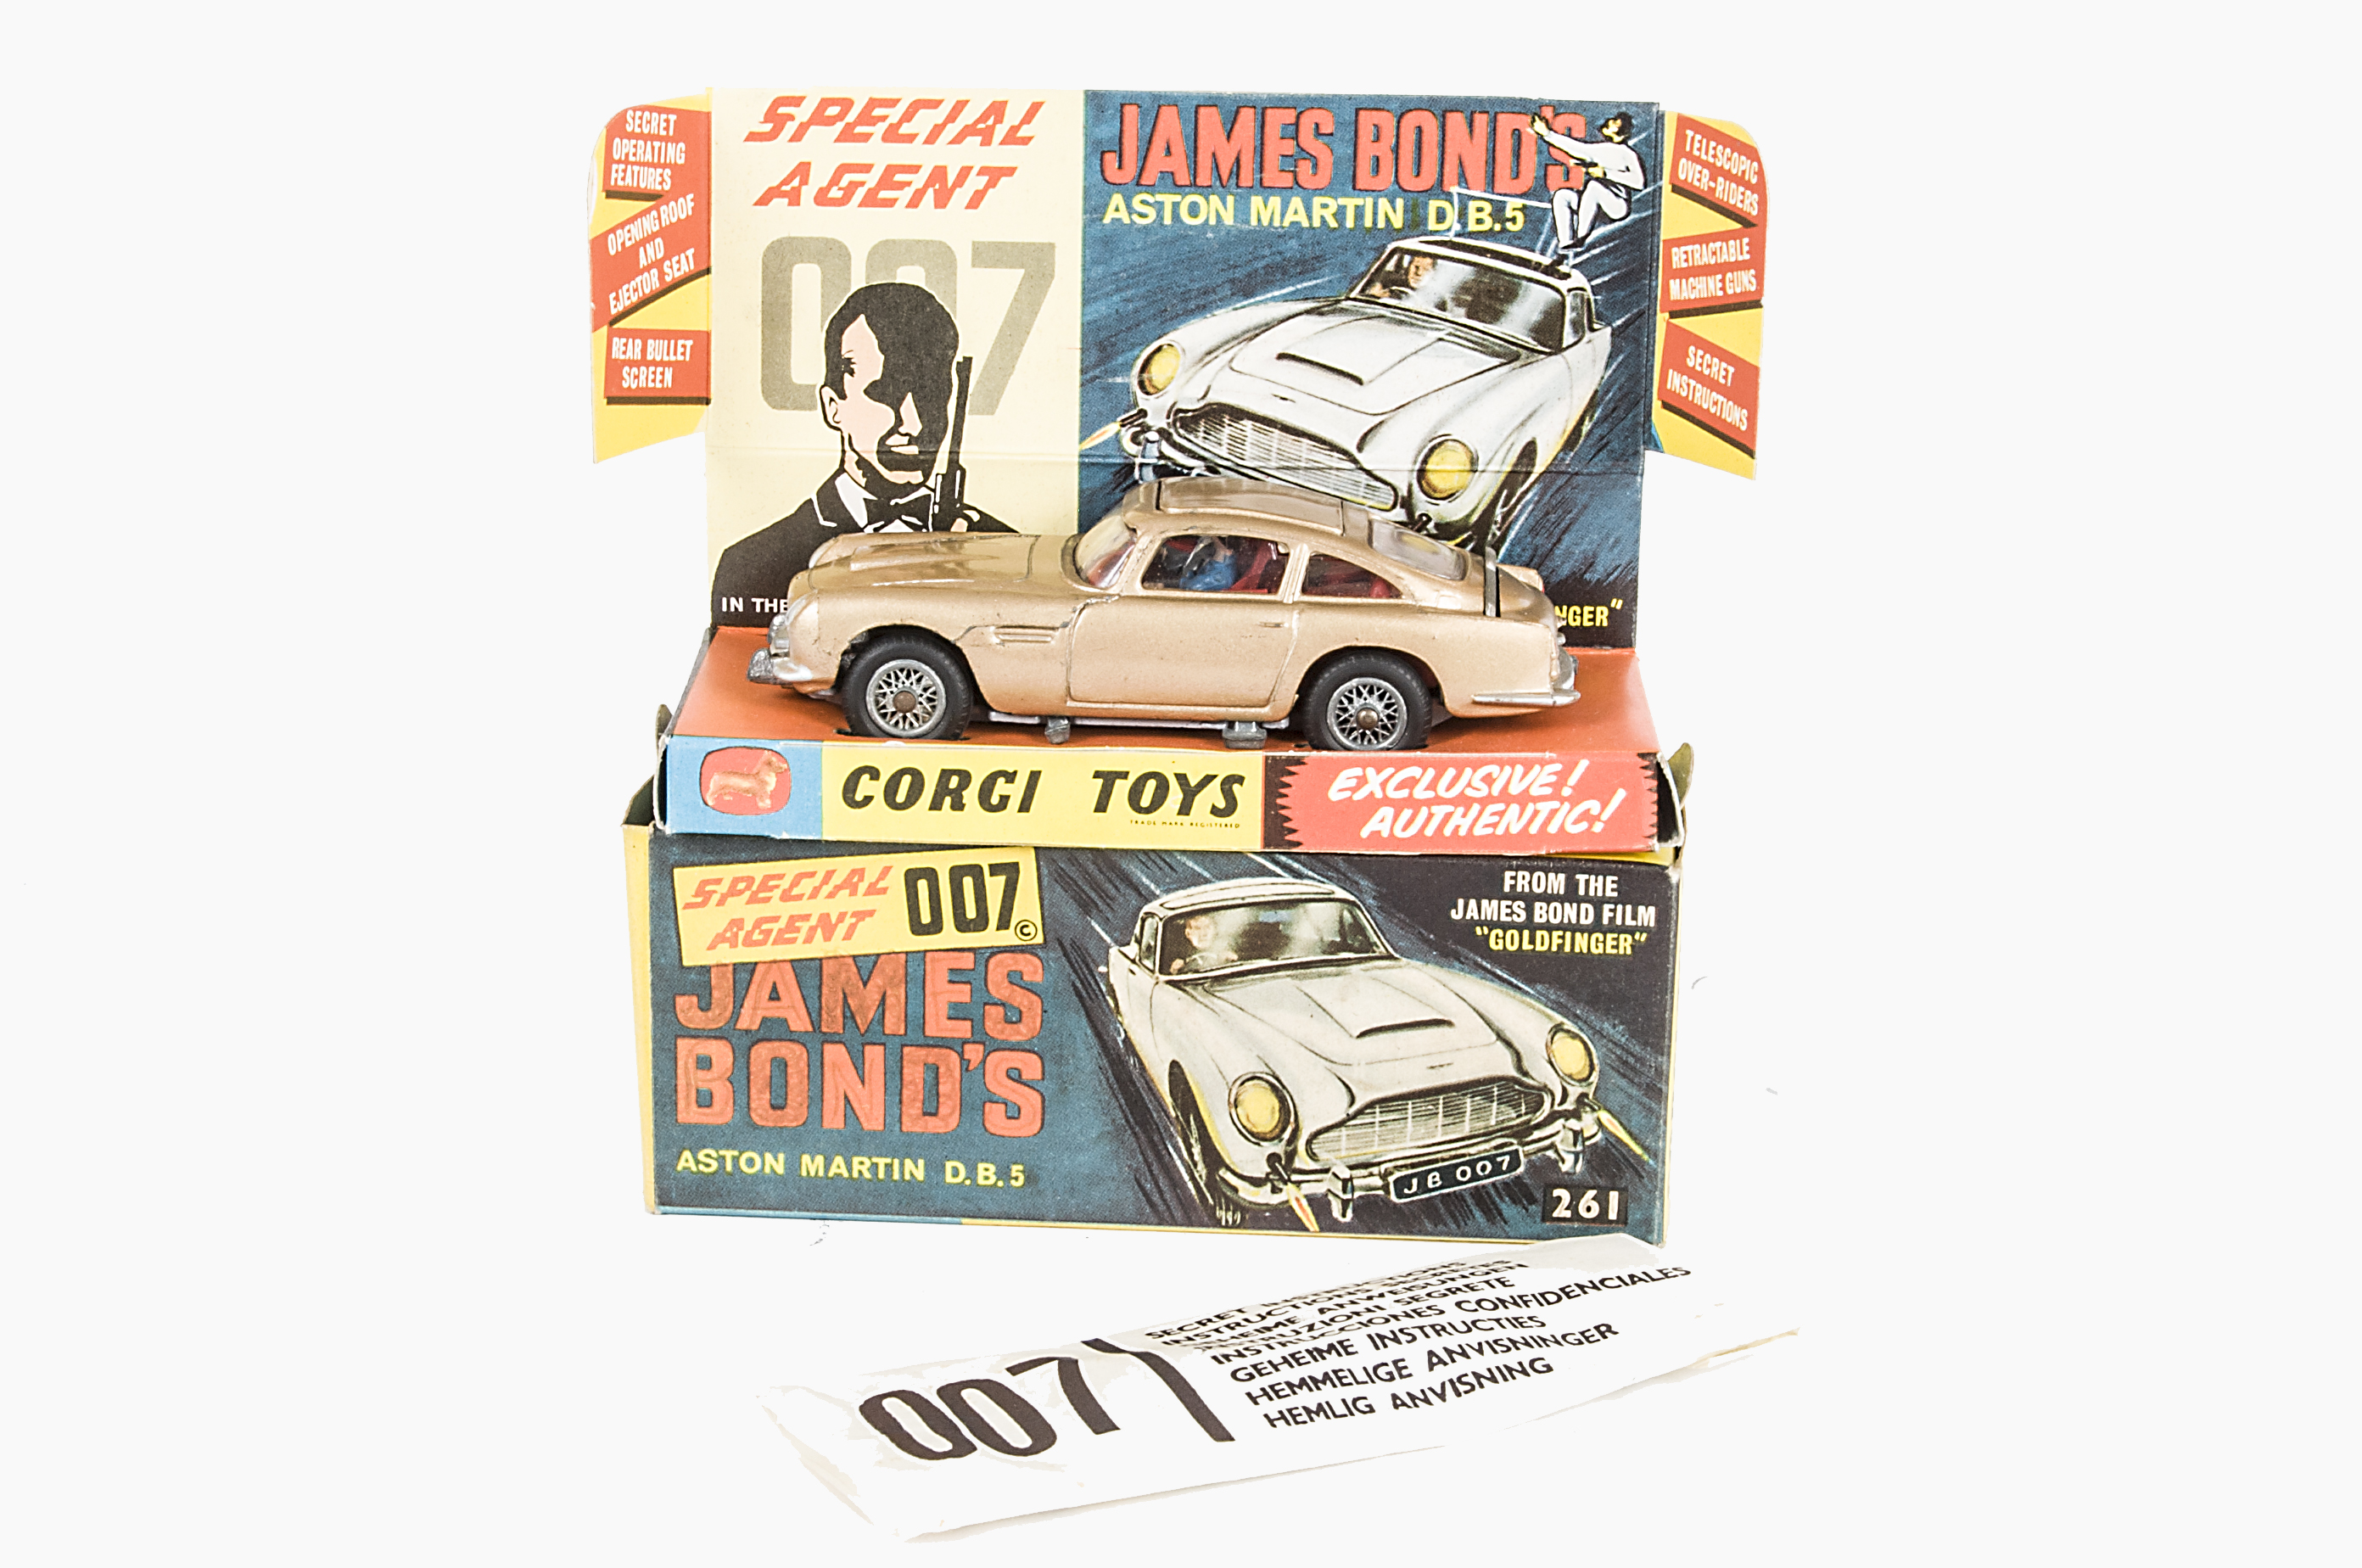 Lot 260 - A Corgi Toys 261 James Bond's Aston Martin D.B.5, gold body, red interior, wire wheels, Bandit